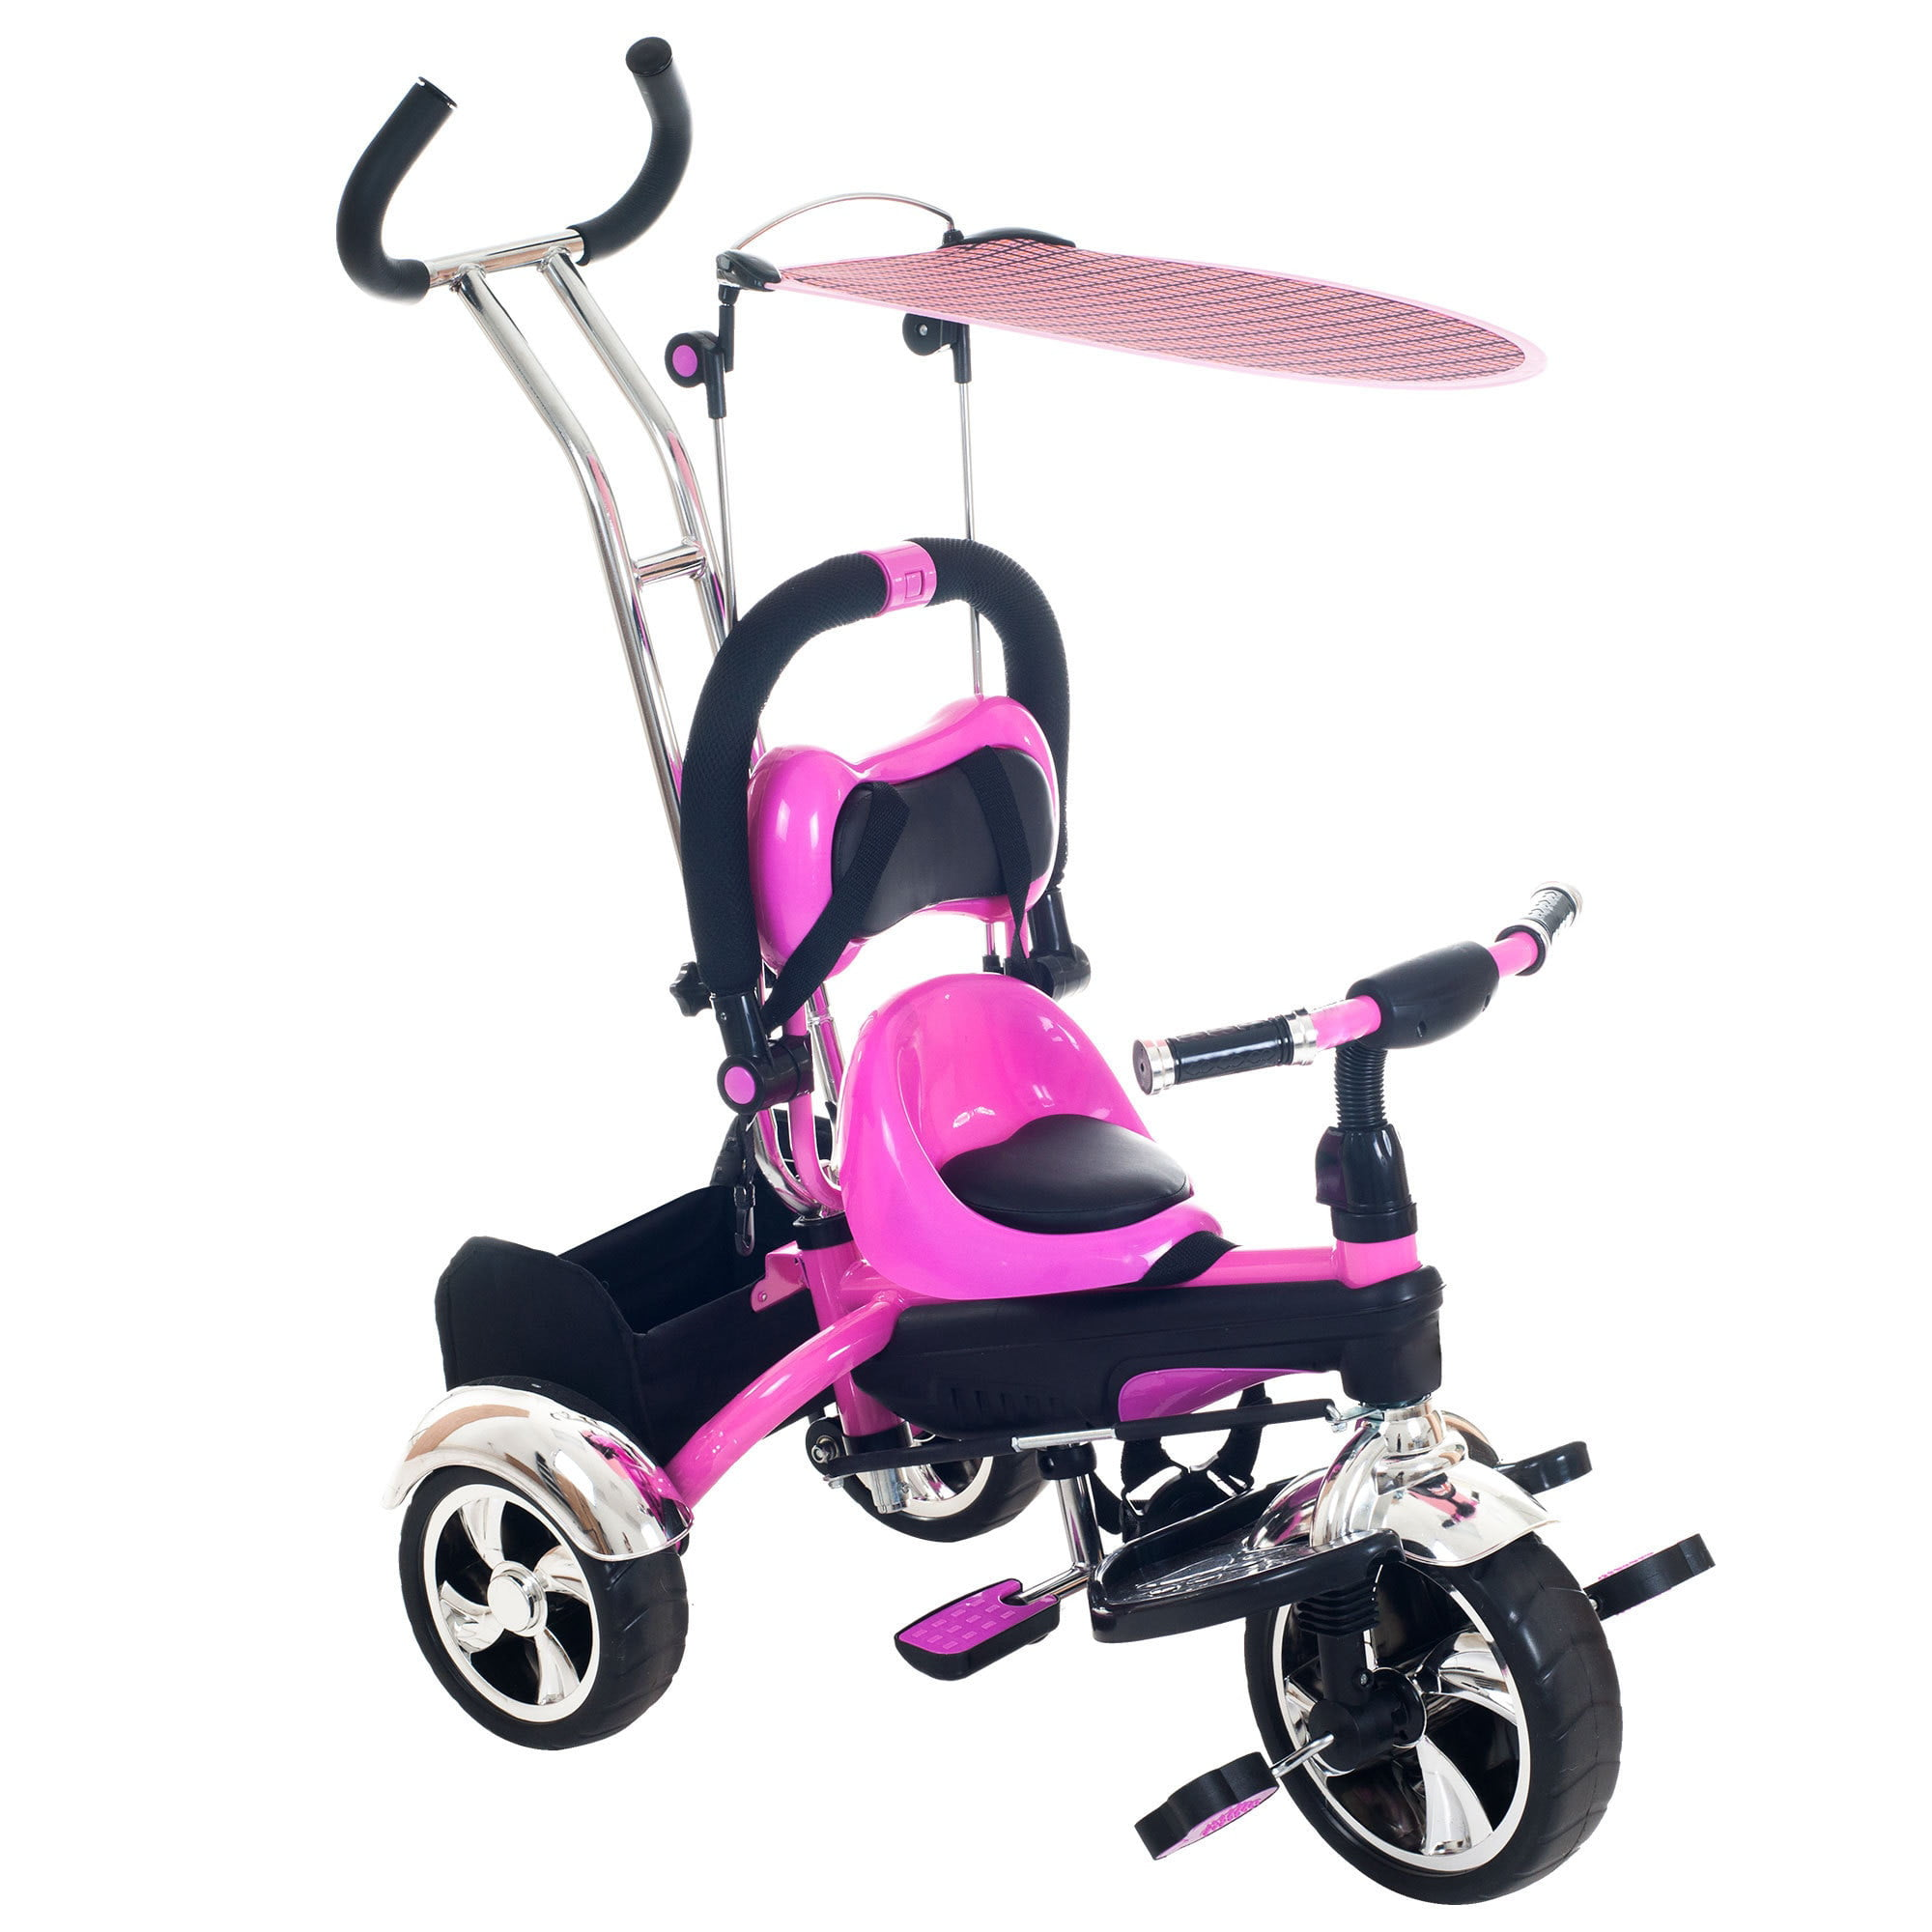 9efb44a584e Tricycle Stroller Bike, 3-1 Stroller with Removable Canopy and Stroller  Organizer by Lil' Rider, Ride on Toys for Boys and Girls, 1 - 5 Year Old,  ...